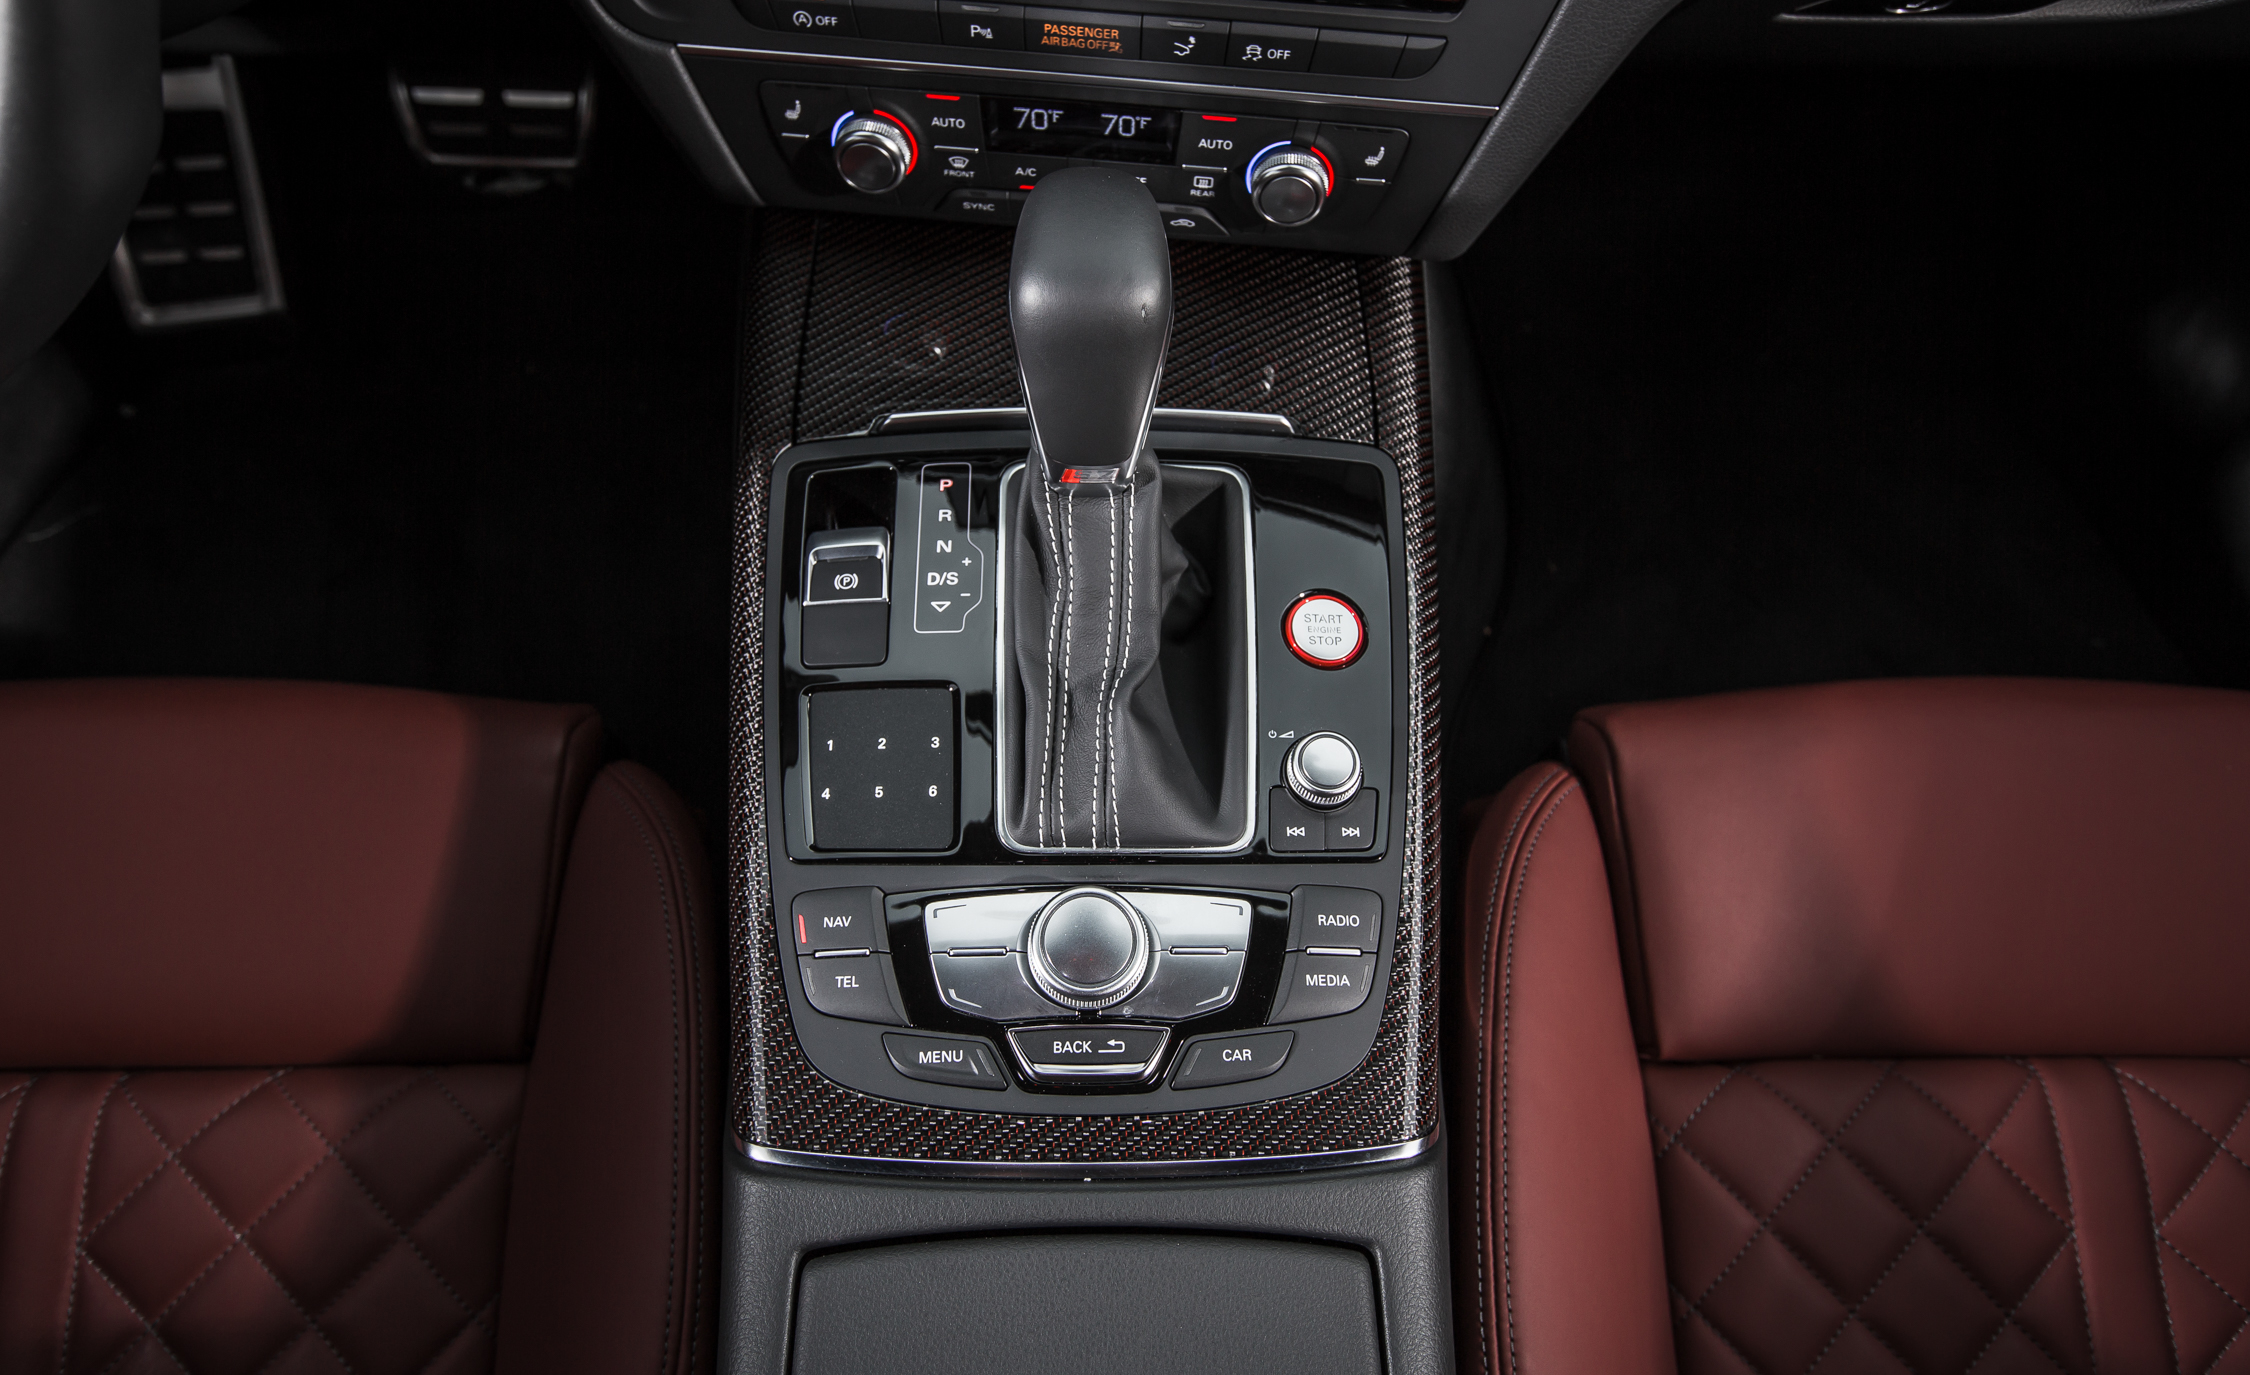 2016 Audi S7 Sedan Gear Shift Knob